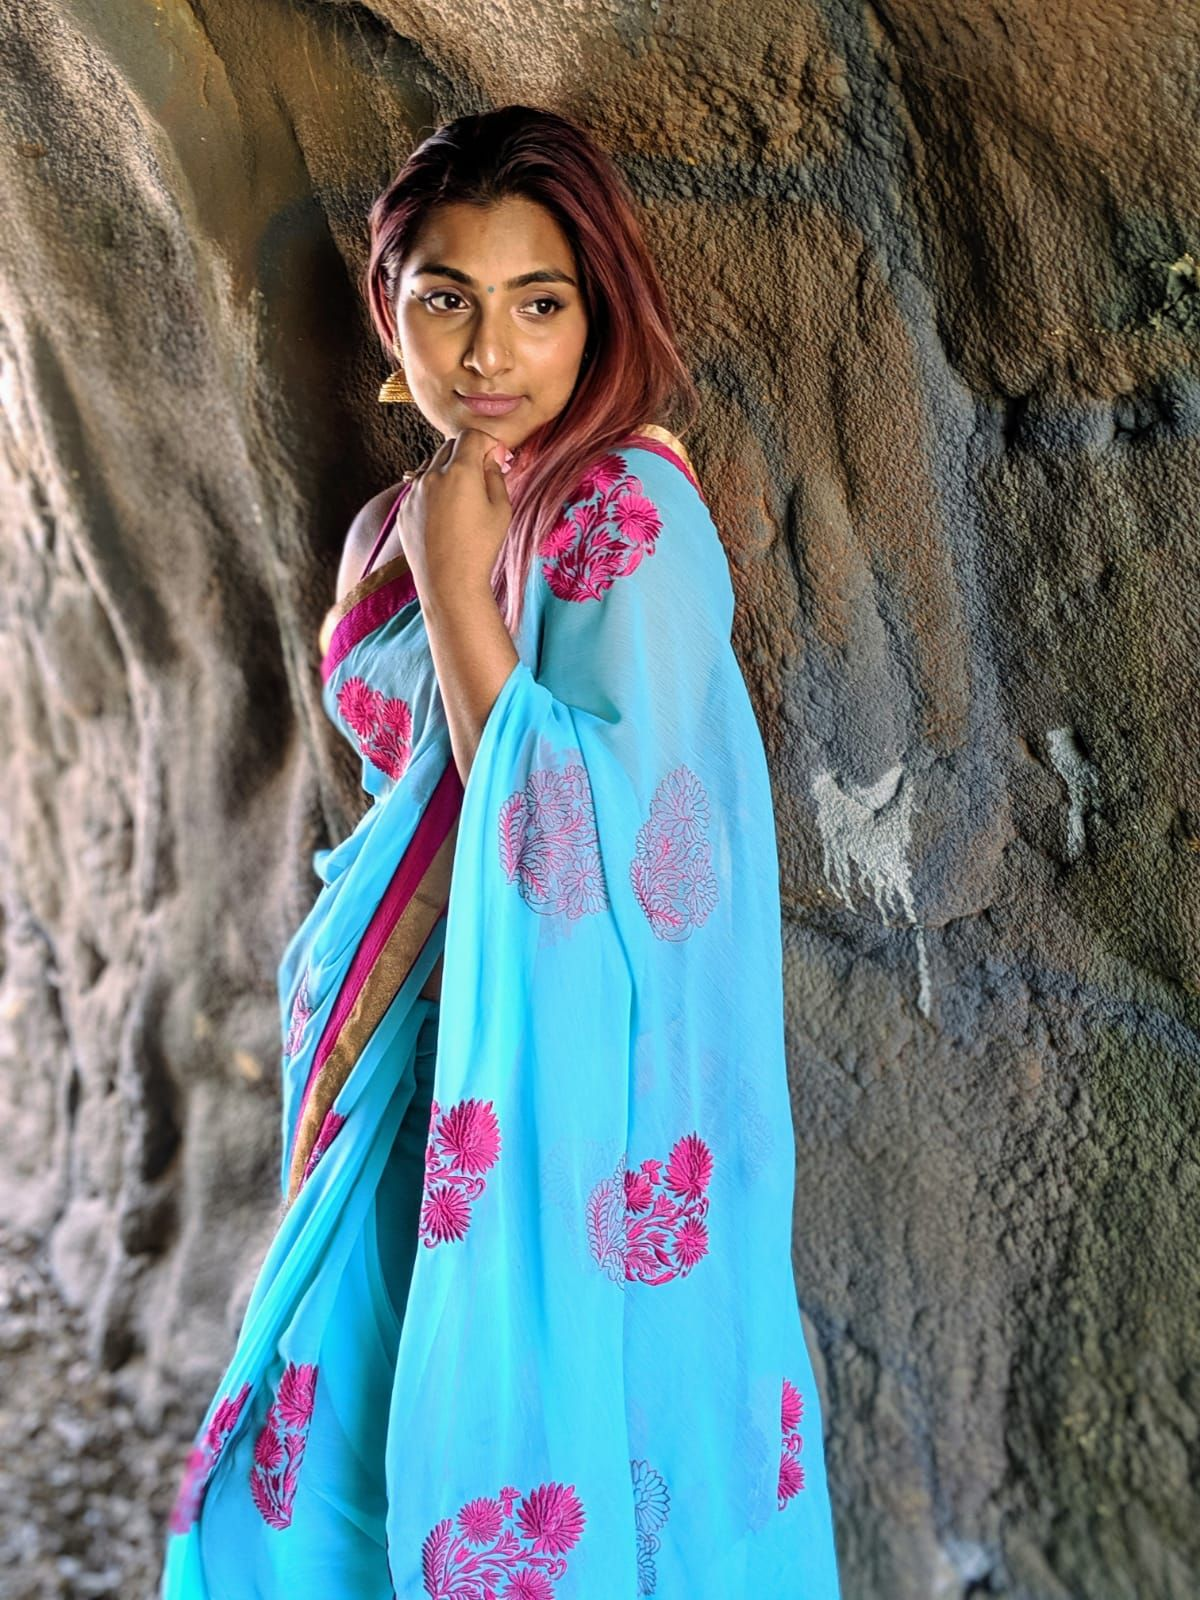 26 Saree Photoshoot Ideas In 2021 Saree Photoshoot Photoshoot Sunflower Field Photography Explora photography tips and solutions 7 tips for taking photographs in the snow. 26 saree photoshoot ideas in 2021